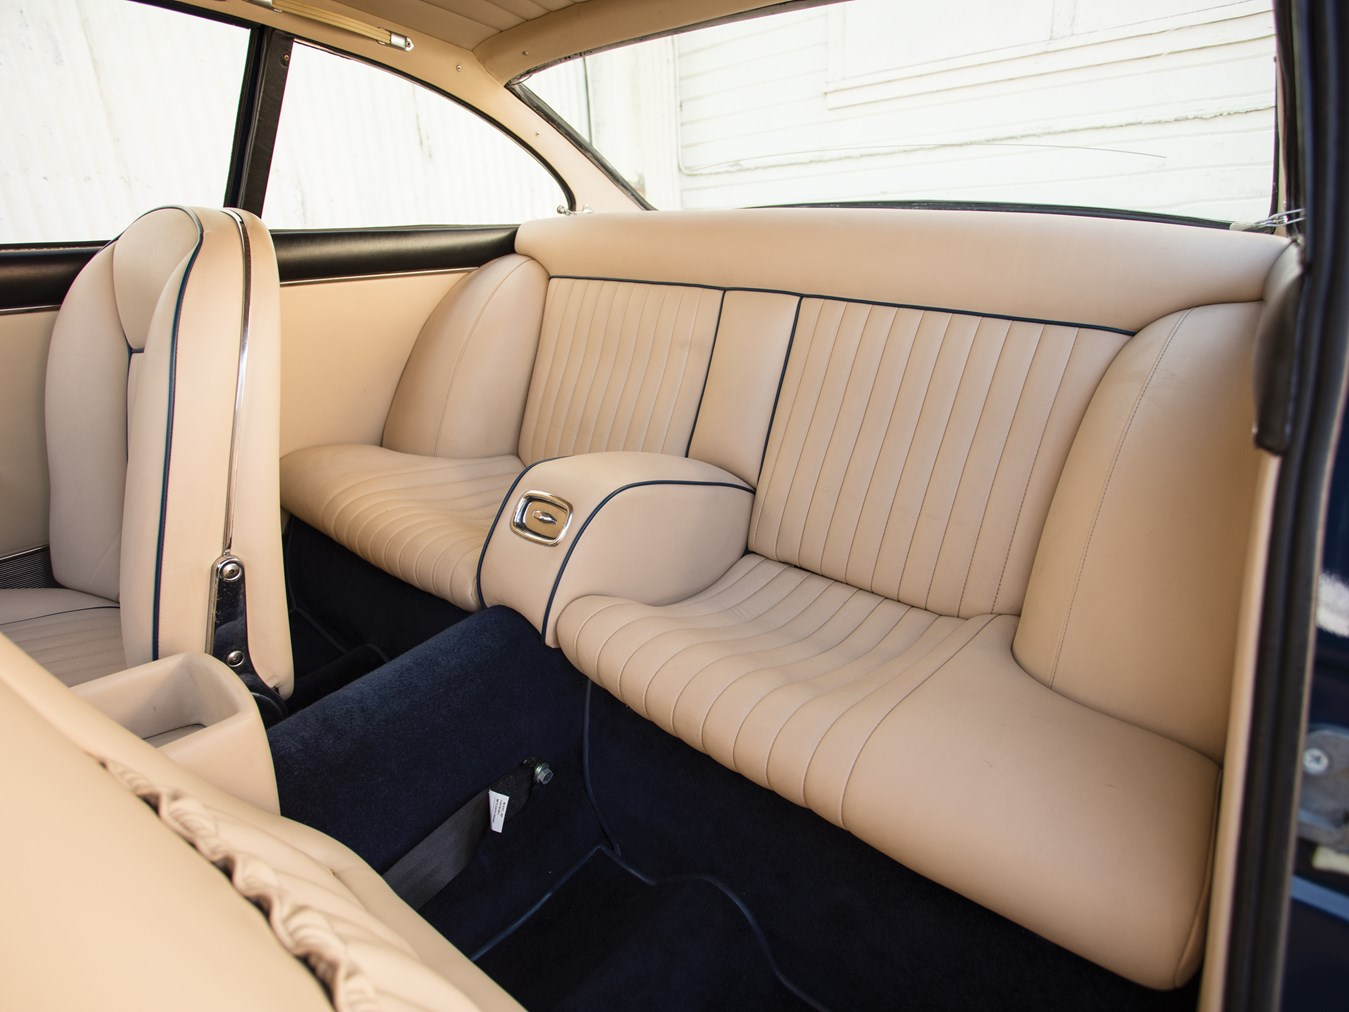 The 330 GT provides quite reasonable comfort for rear seat passengers.